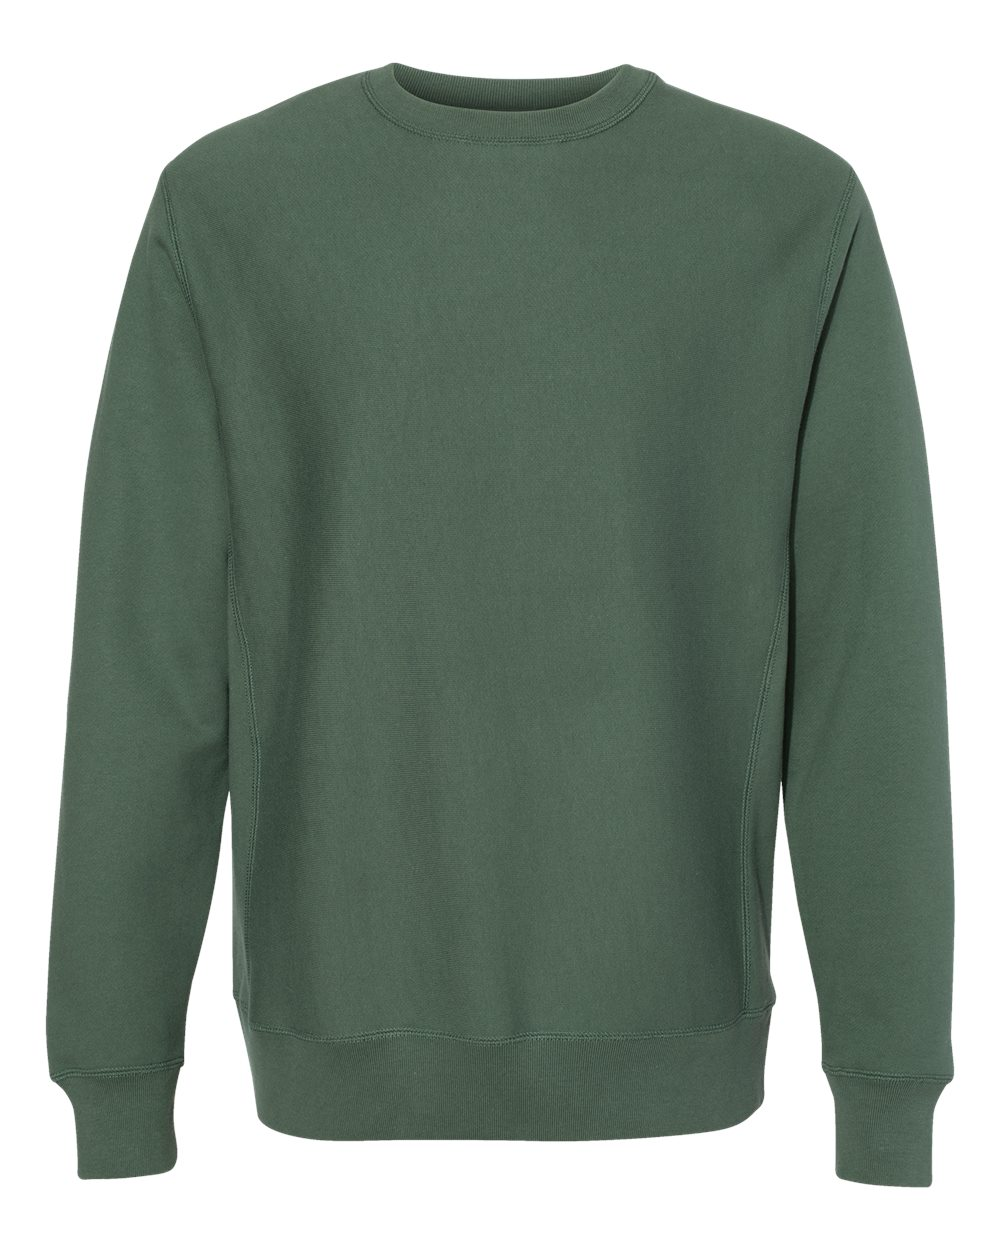 Independent-Trading-Co-Mens-Premium-Heavyweight-Cross-Grain-Sweatshirt-IND5000C thumbnail 6